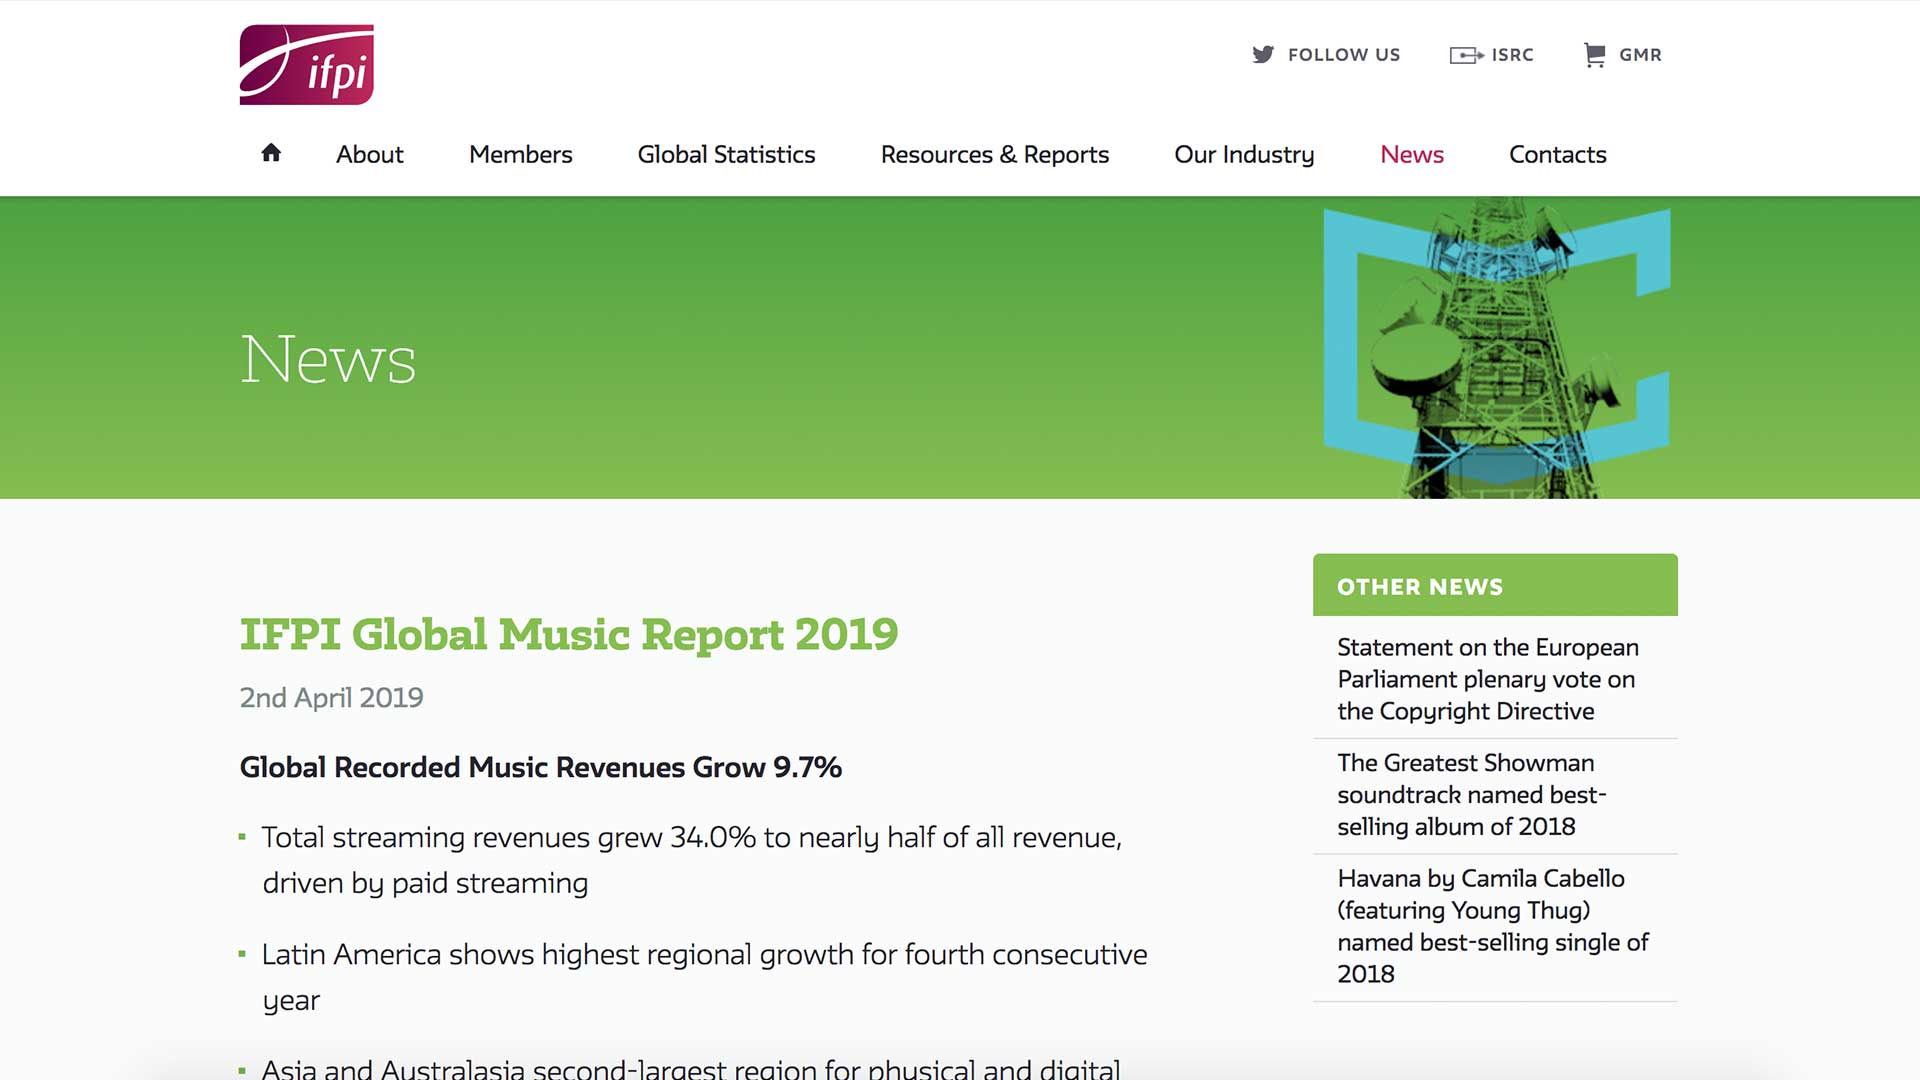 Fairness Rocks News IFPI Global Music Report 2019